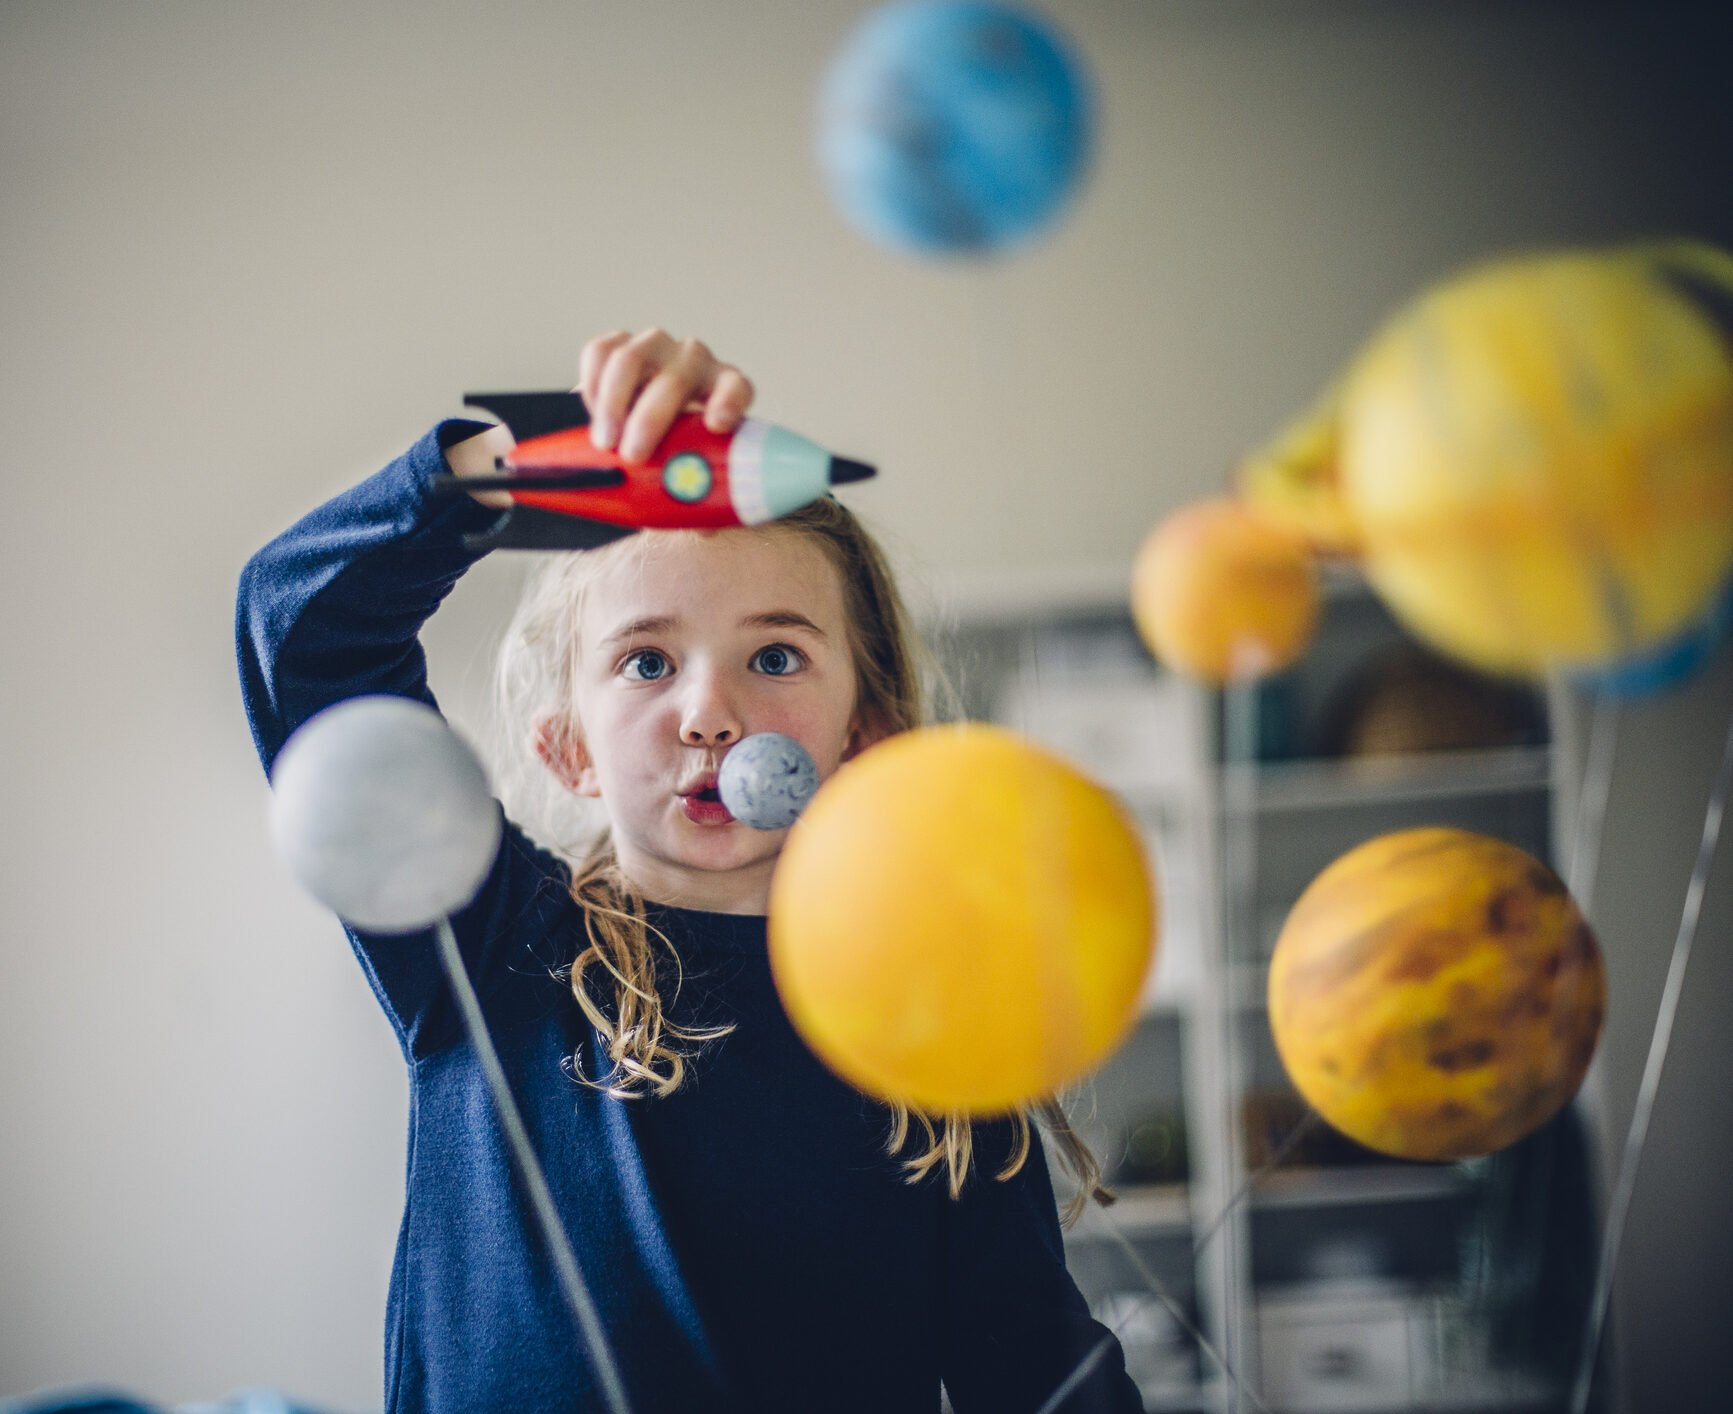 10 Ways Parents Can Make Home an Engaging Learning Environment